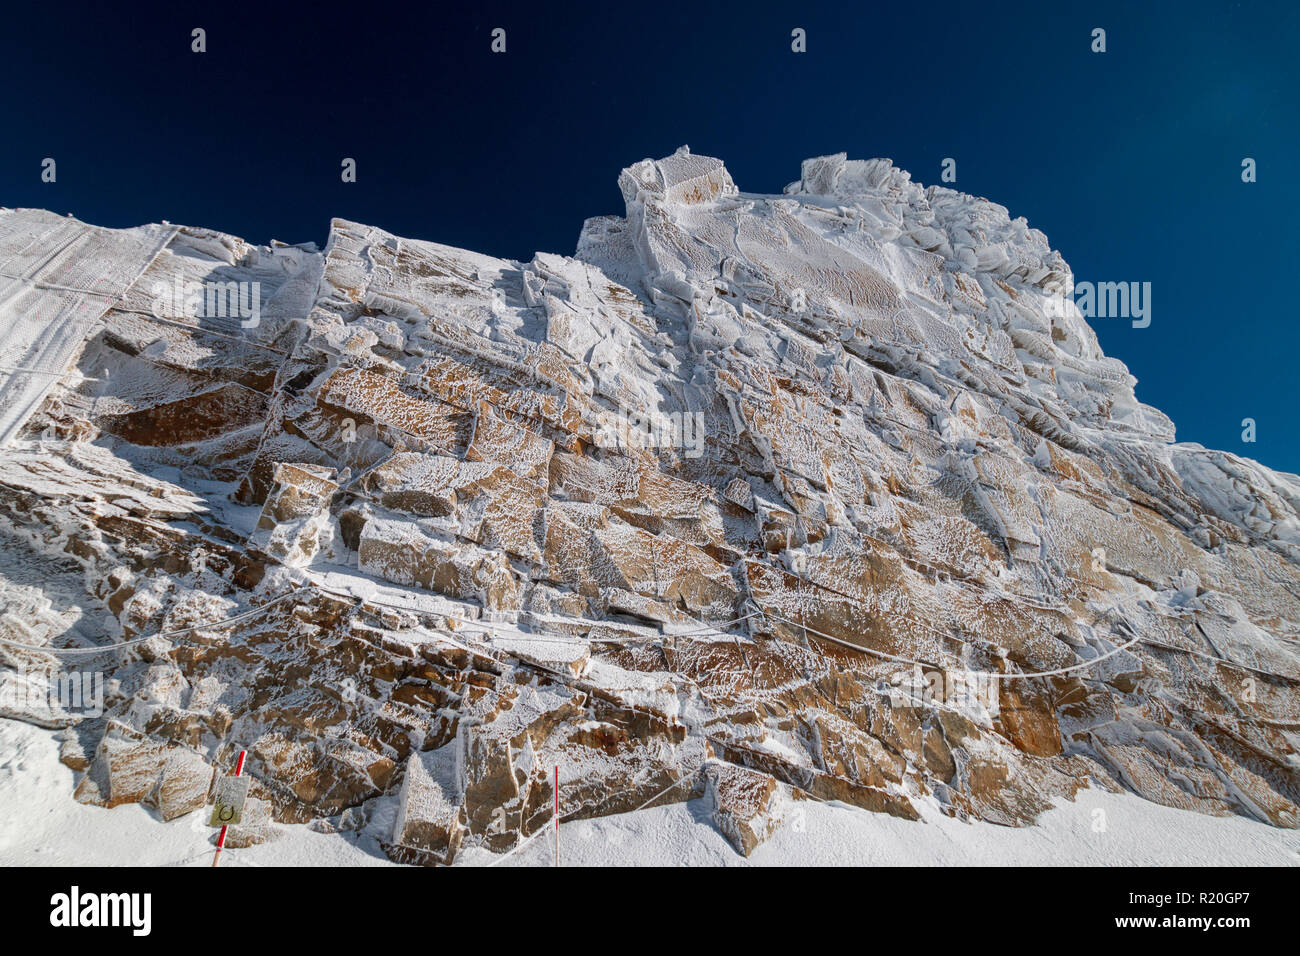 "So called ""frozen wall"" in front of a blue sky in Austrian ski region of Hintertux Glacier, Zillertal, Austria Stock Photo"